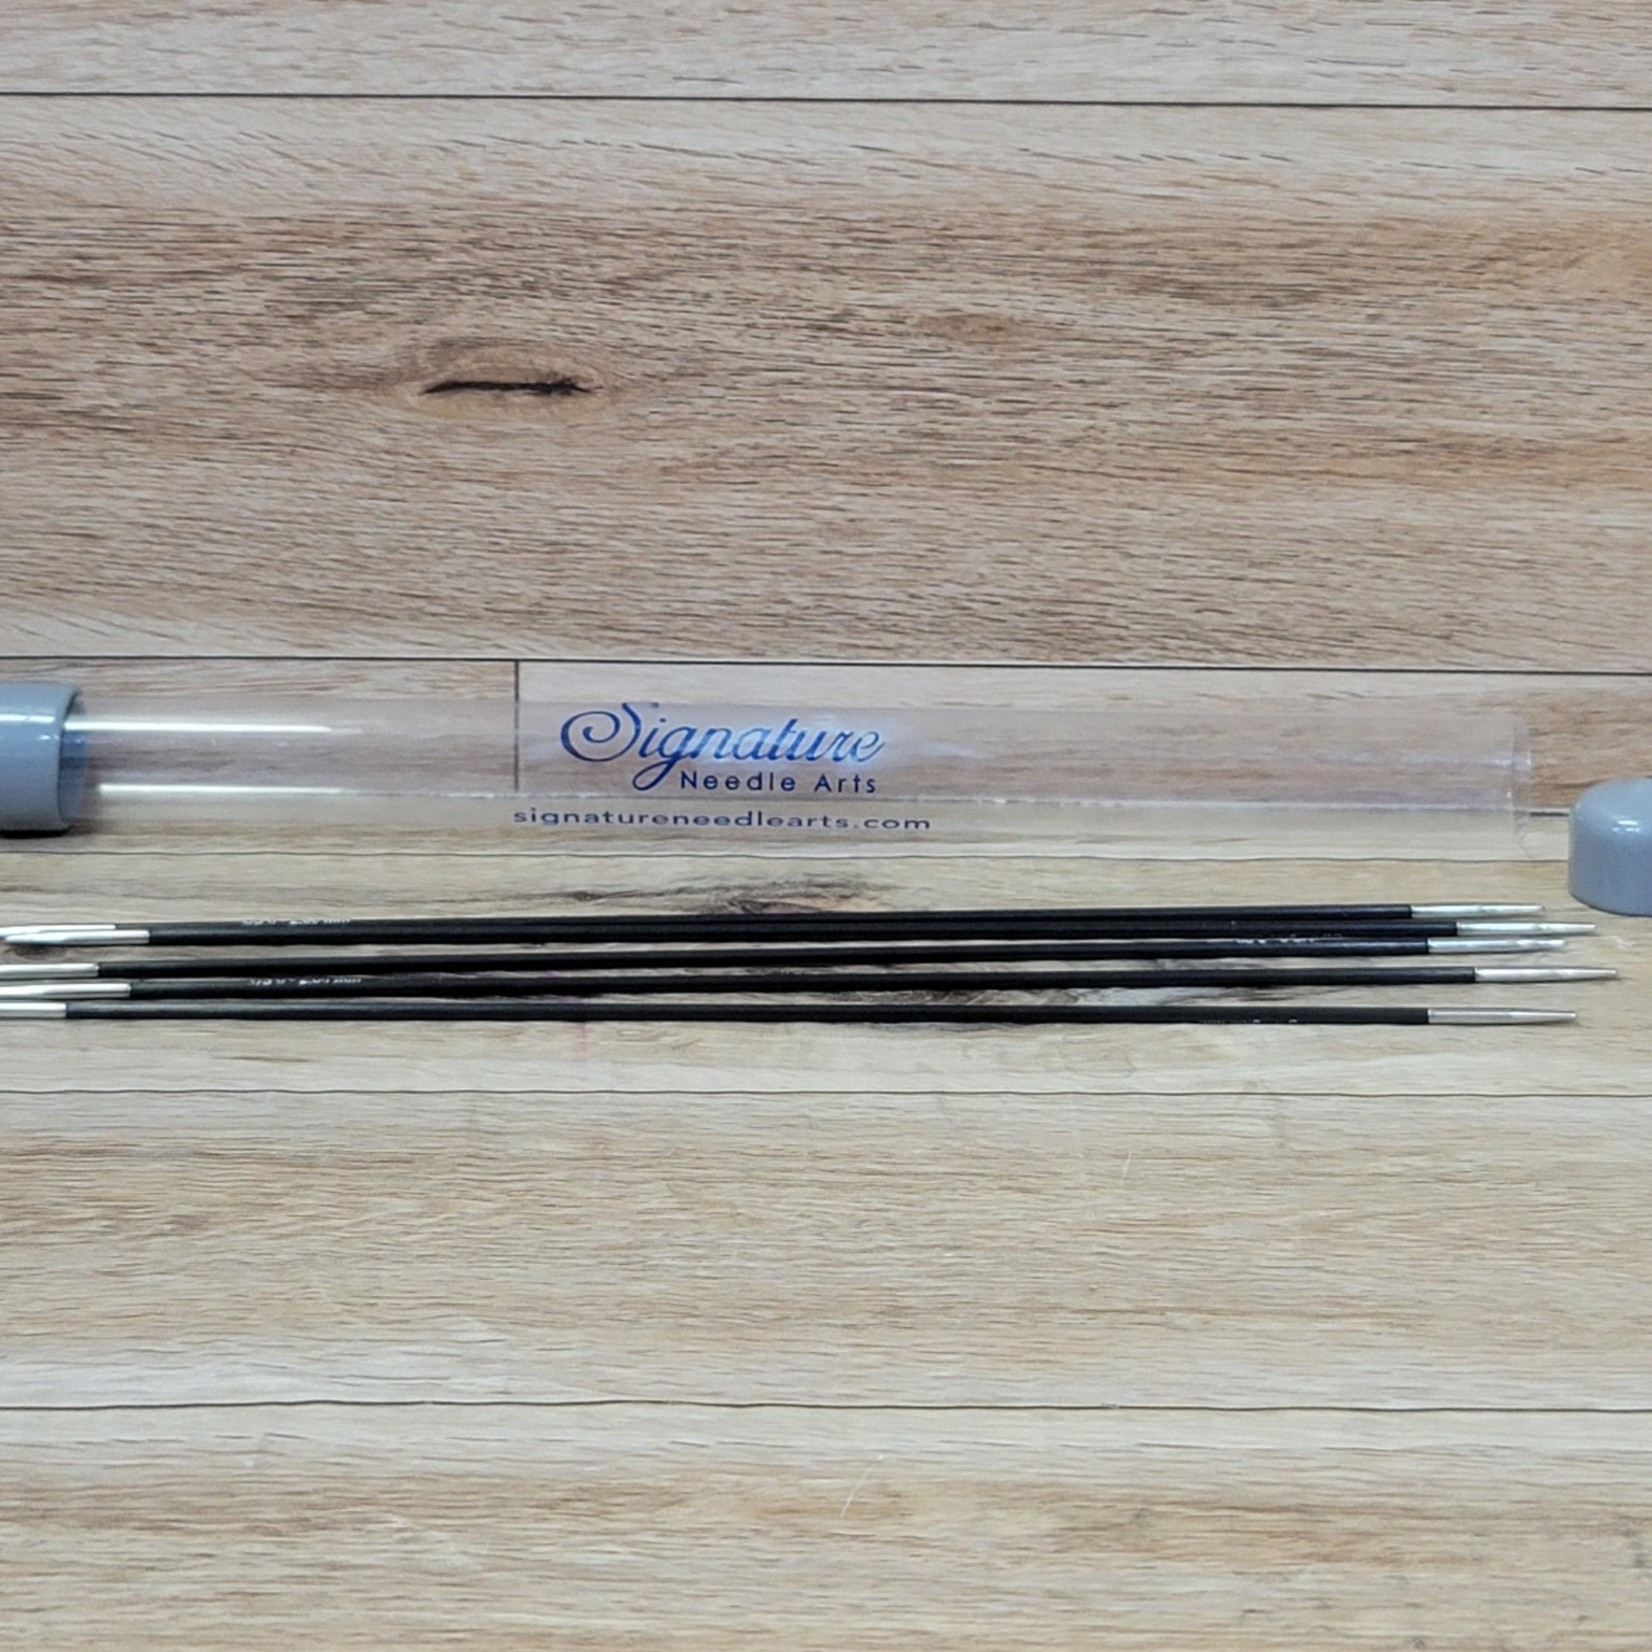 Knitter's Pride Karbonz -  Set of 5 double pointed knitting needles - US 2.5 - 3.00mm